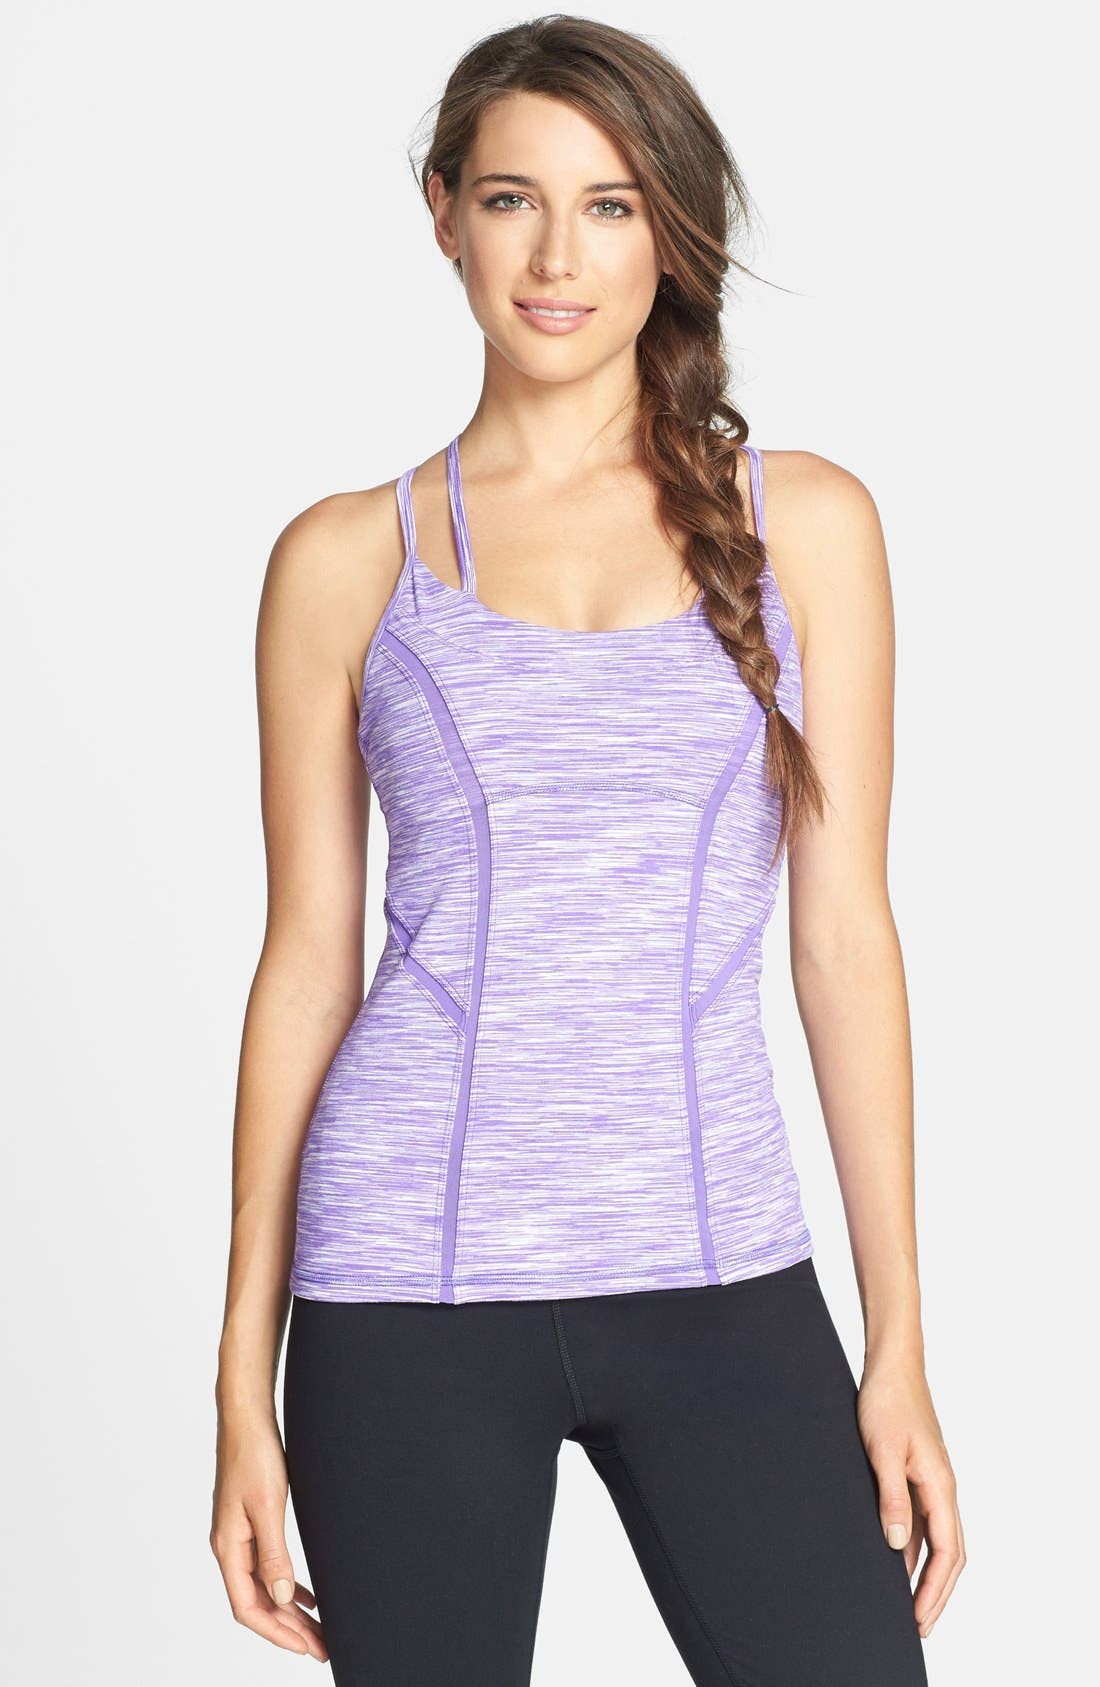 Alternate Image 1 Selected - Zella 'Alexa' Space Dye Shelf Bra Tank